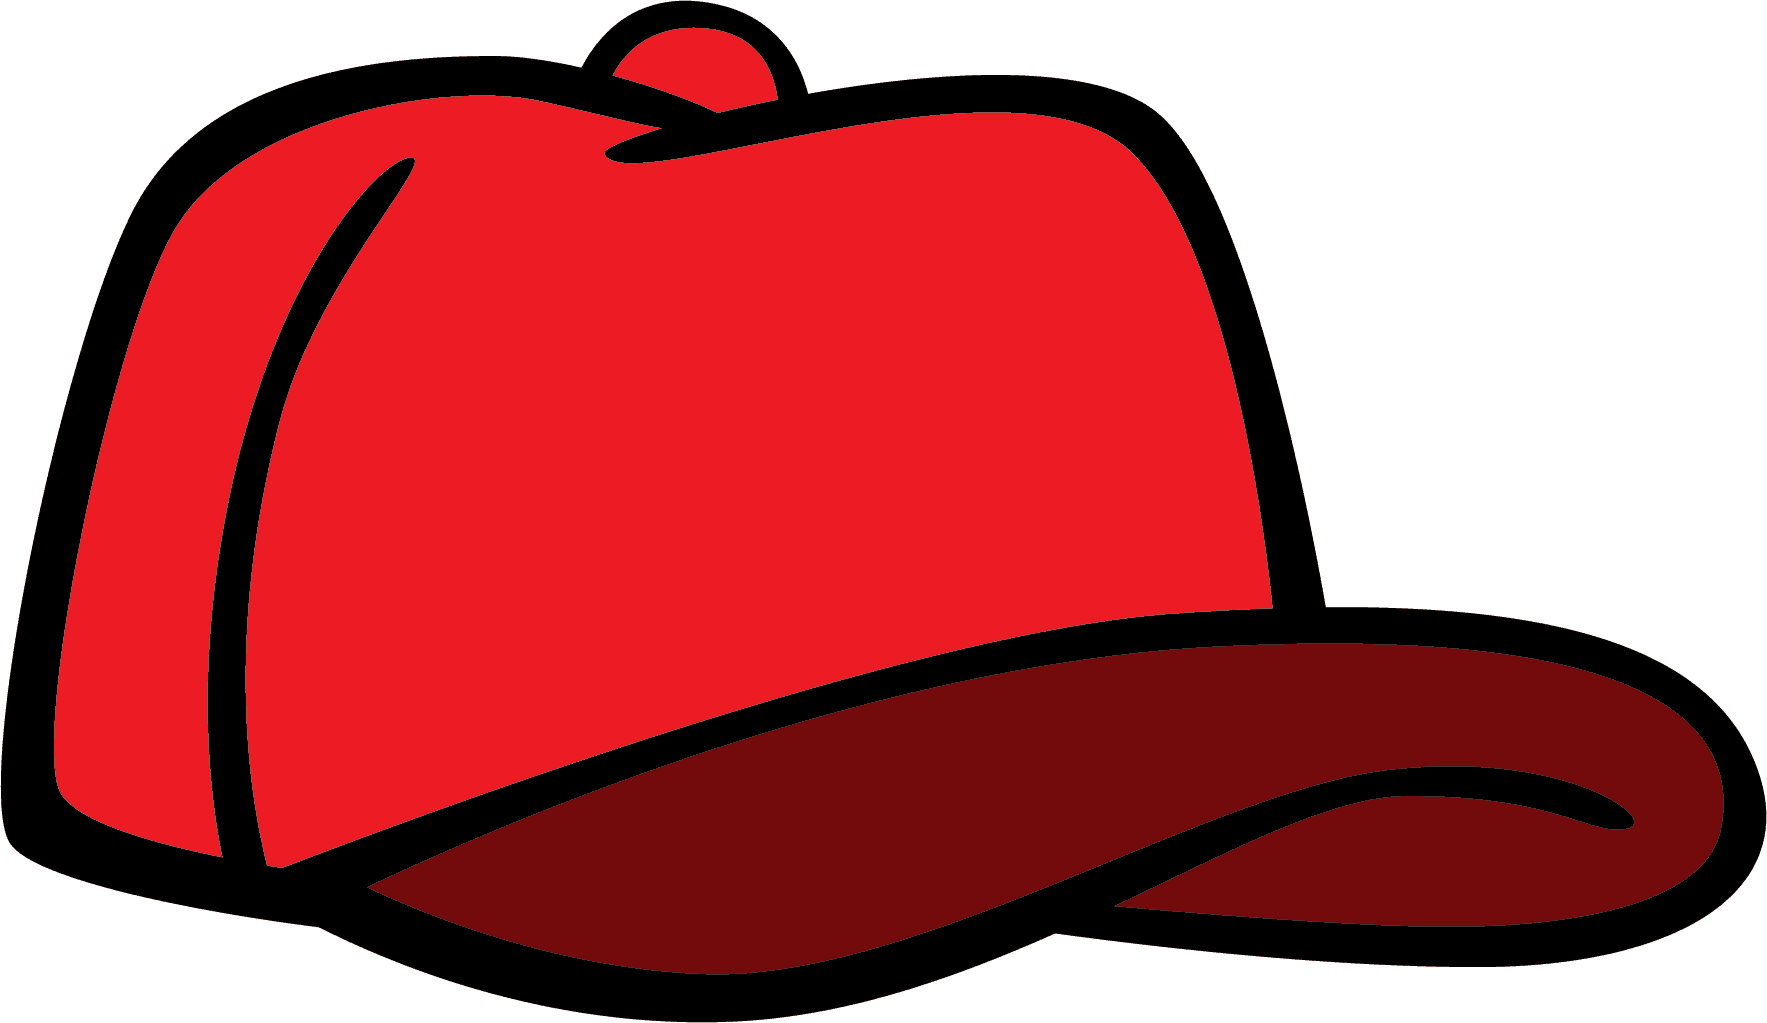 Hat clipart #9, Download drawings